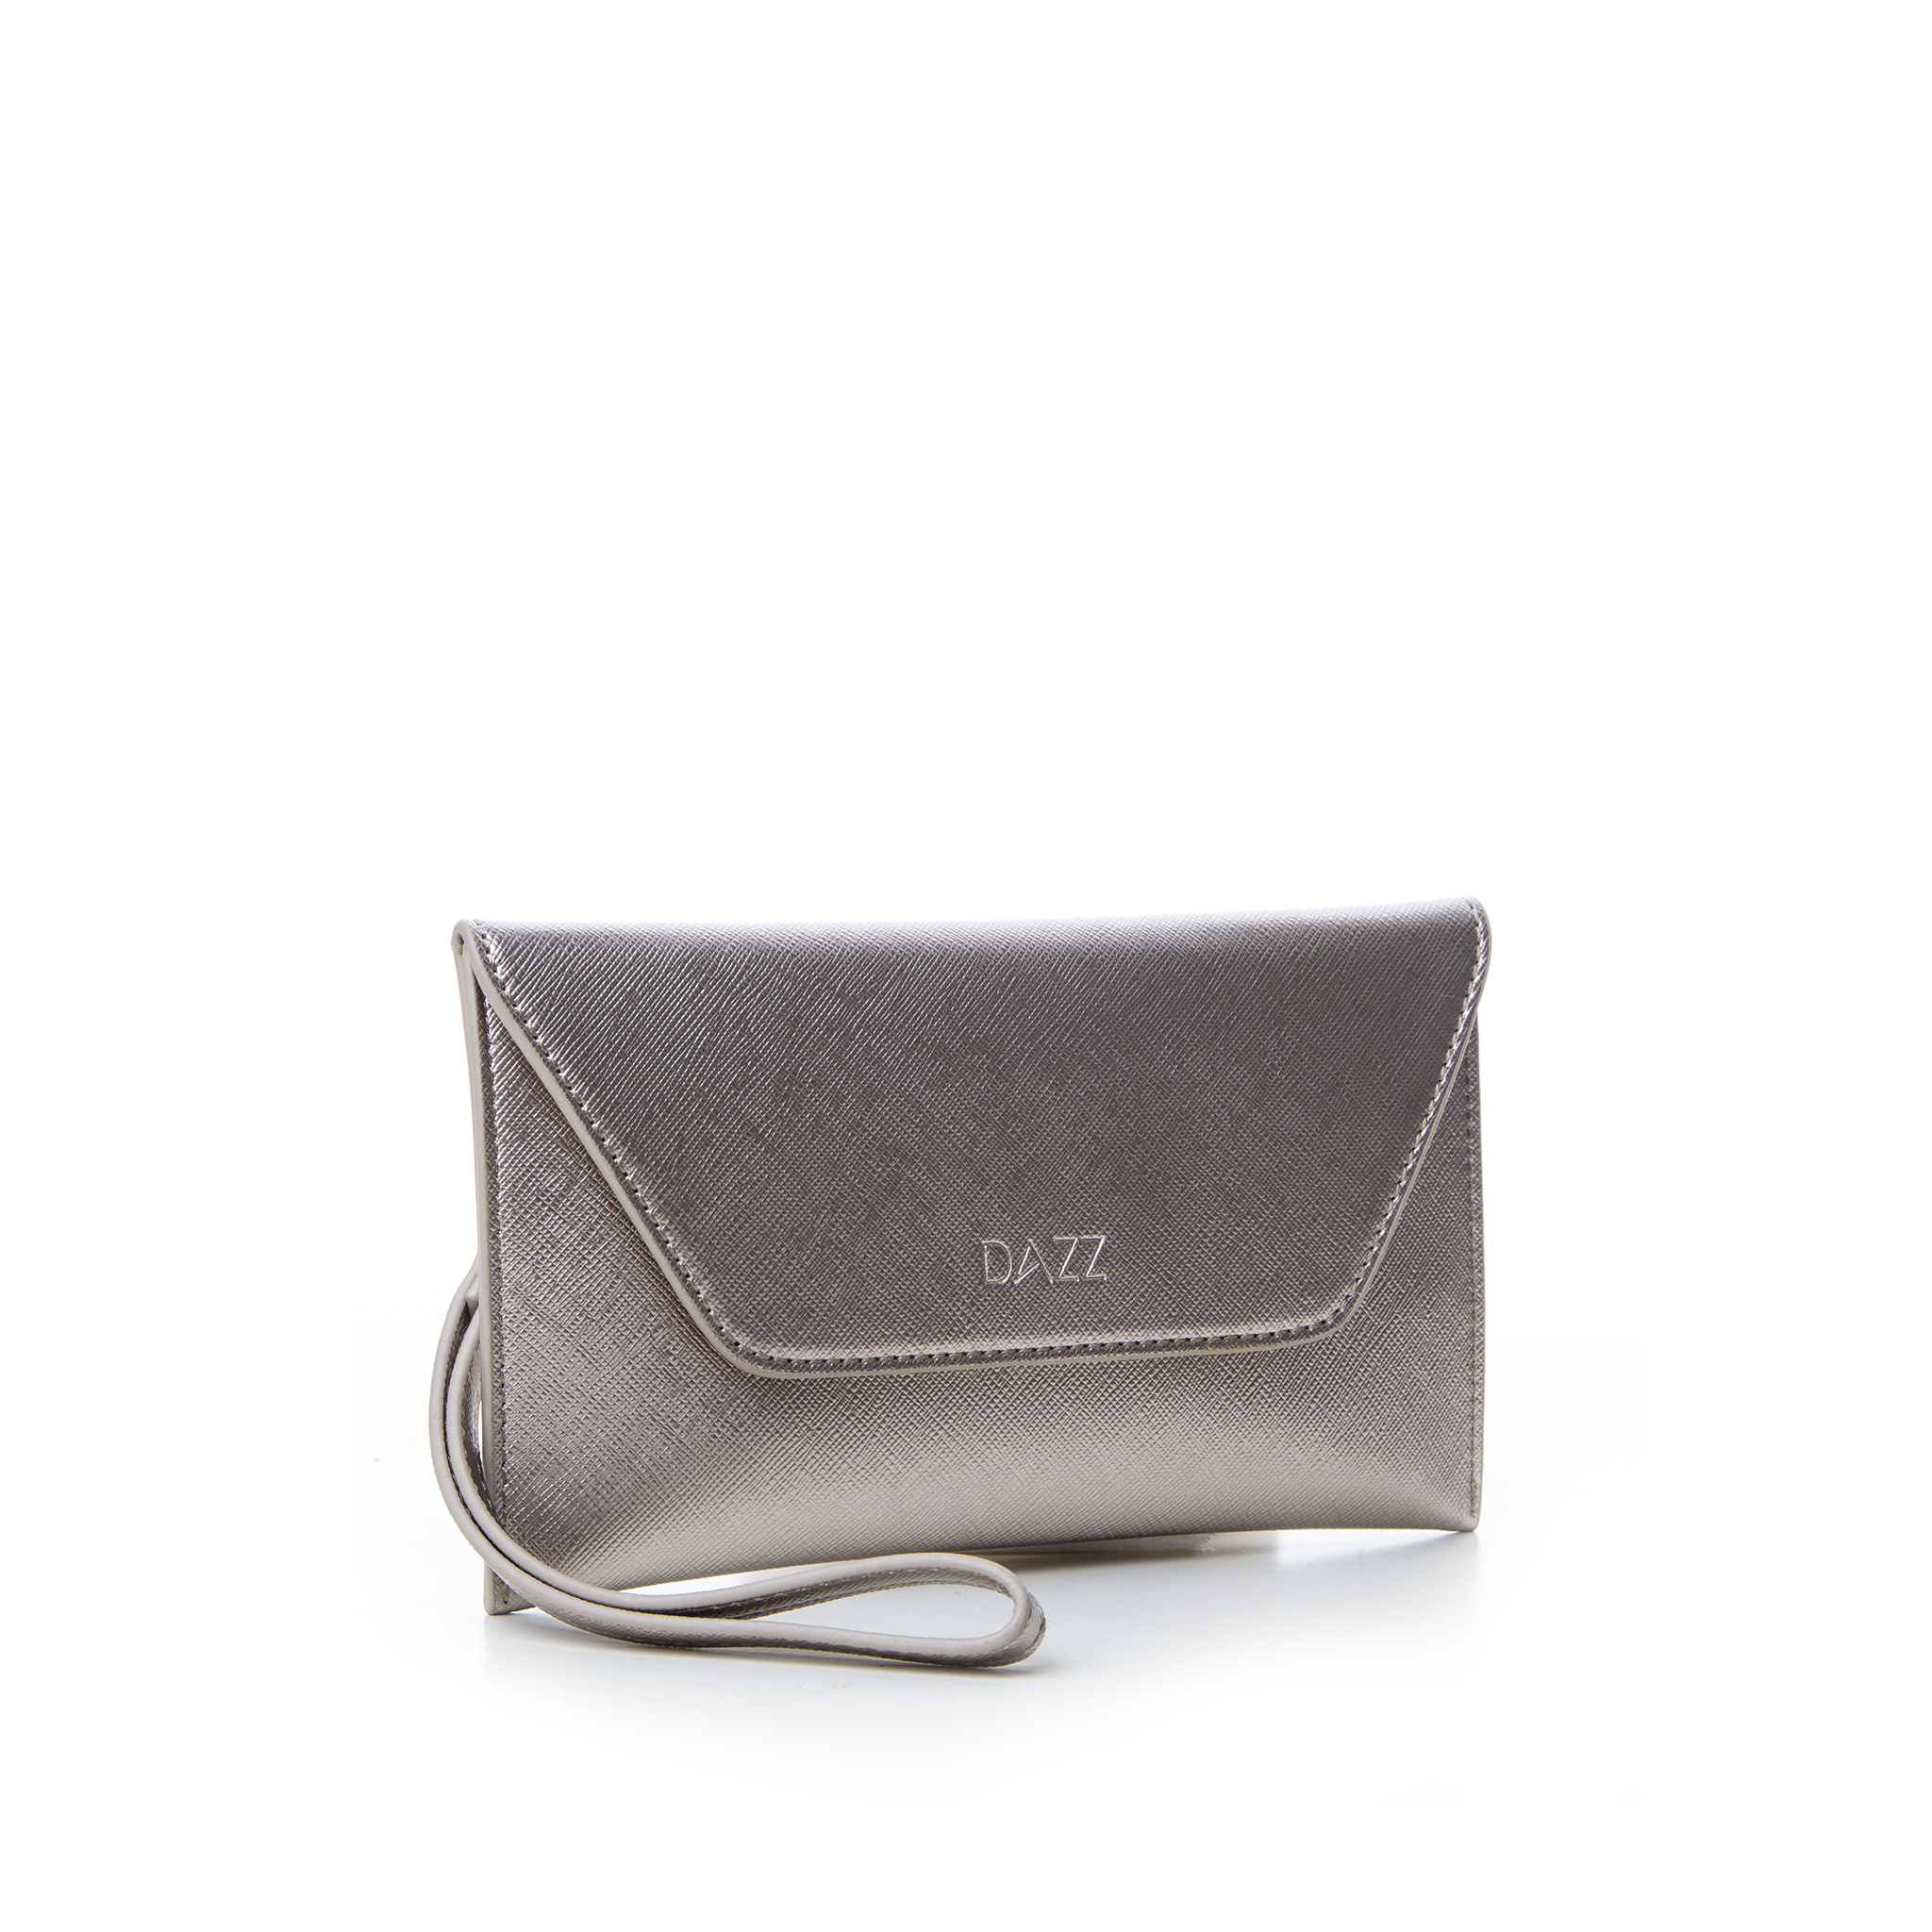 On the Go by Dazz Clutch - Metallic Silver